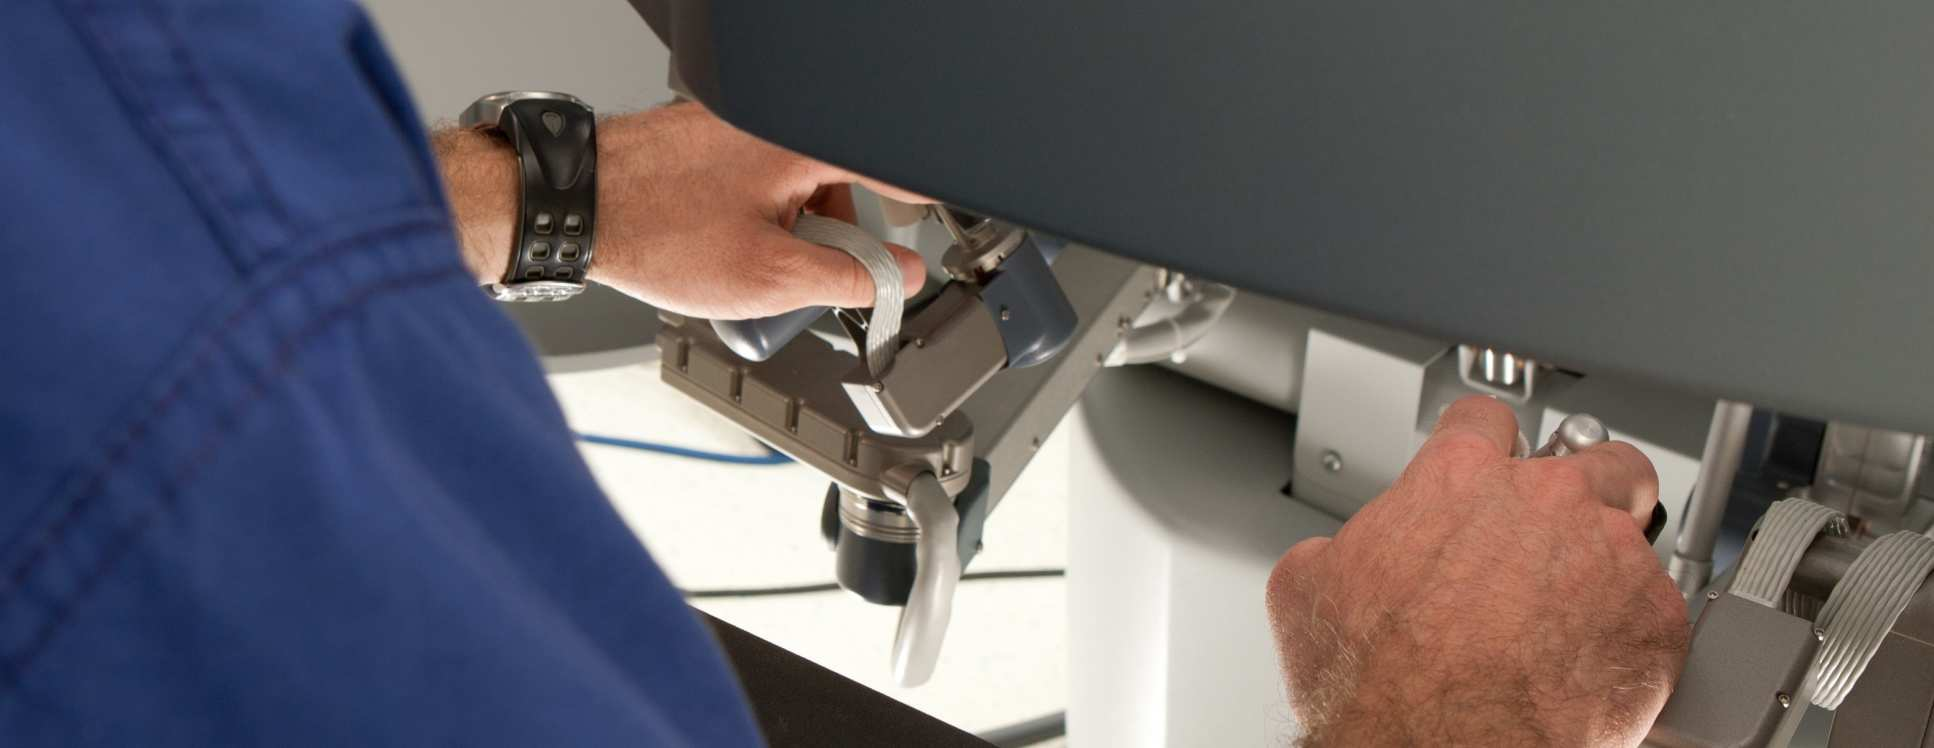 Hands operating a robotic surgery machine.